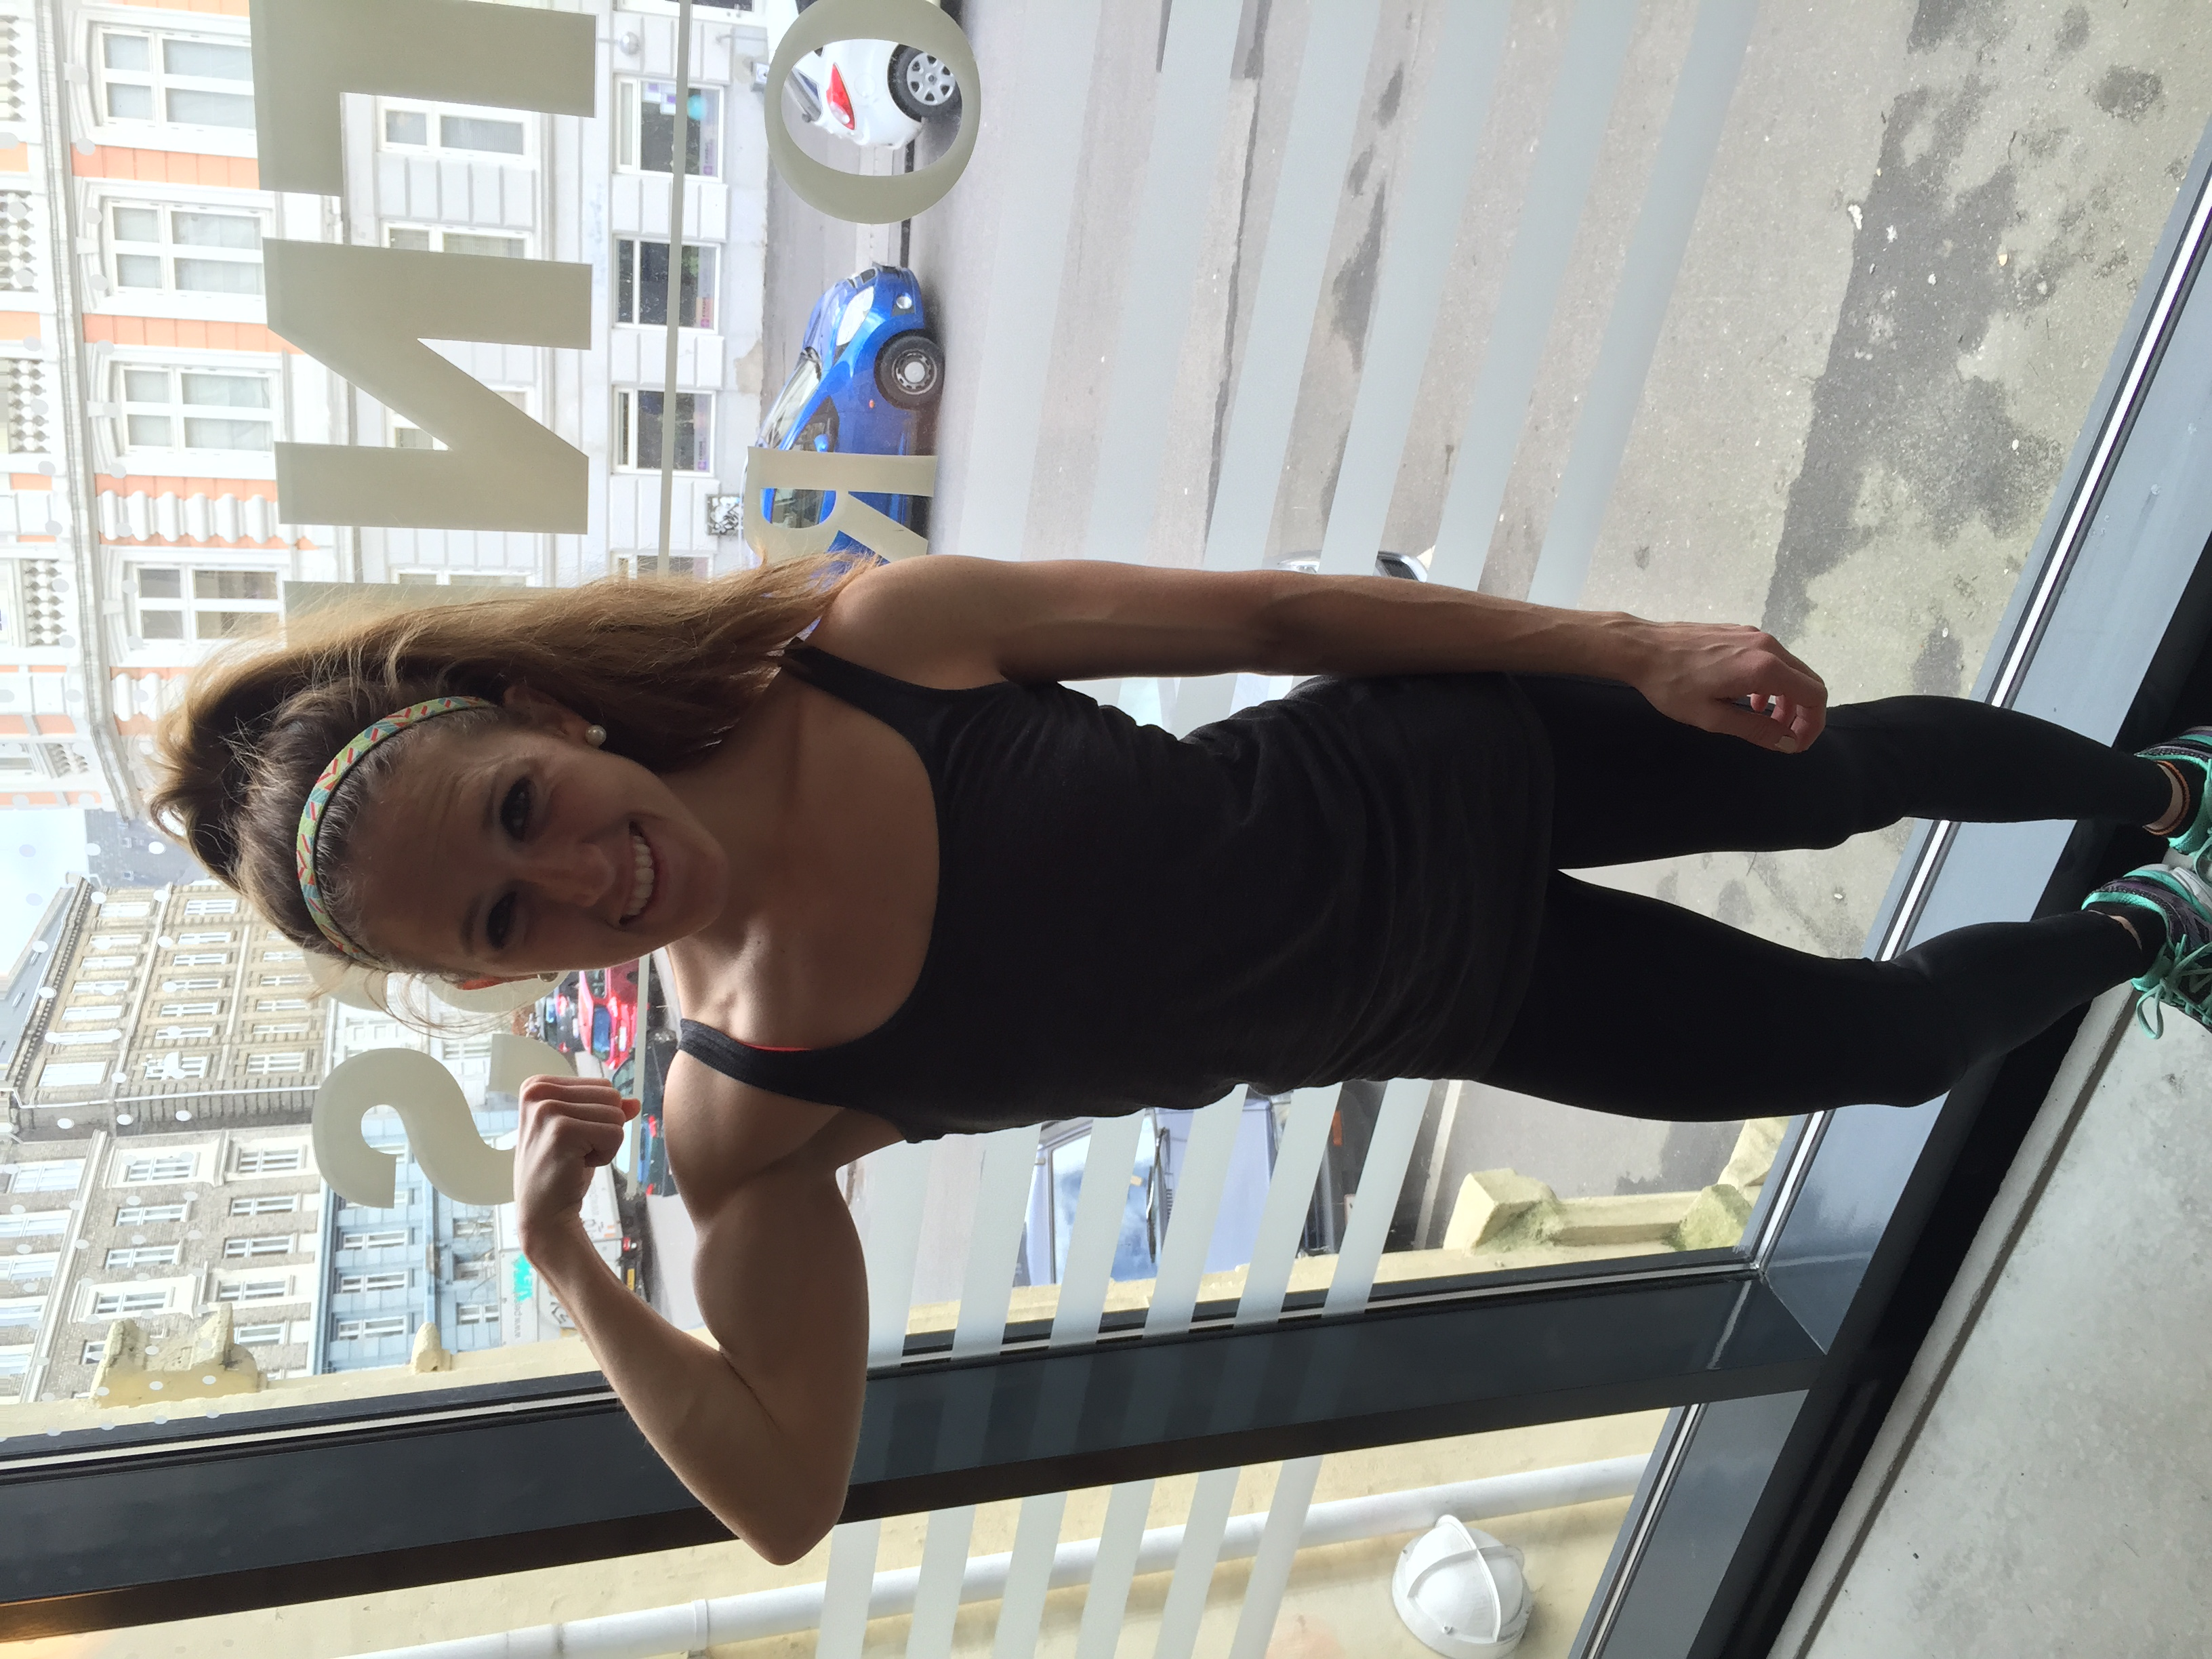 Lifting session at Fitness World in Copenhagen!